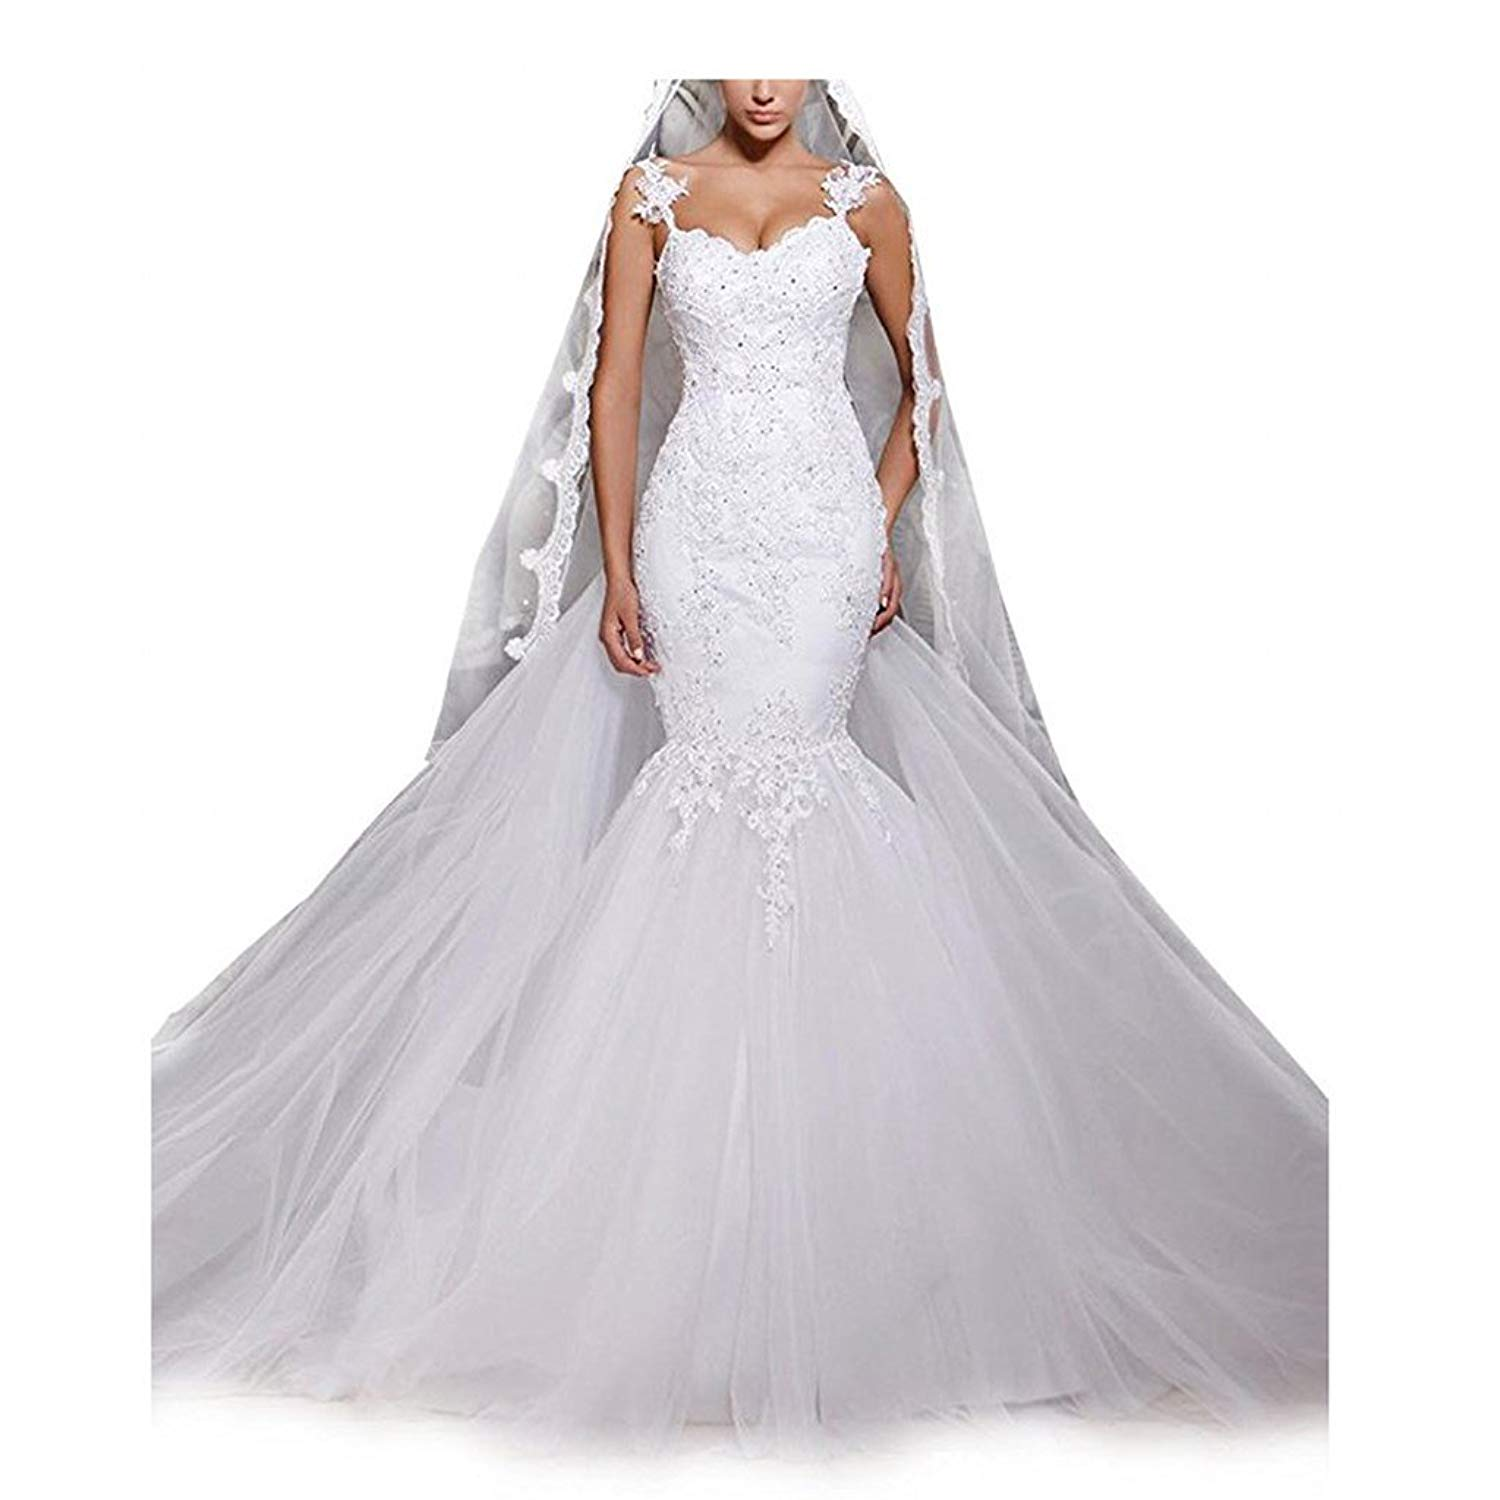 Cheap Wedding Gown With Detachable Skirt Find Wedding Gown With Detachable Skirt Deals On Line At Alibaba Com